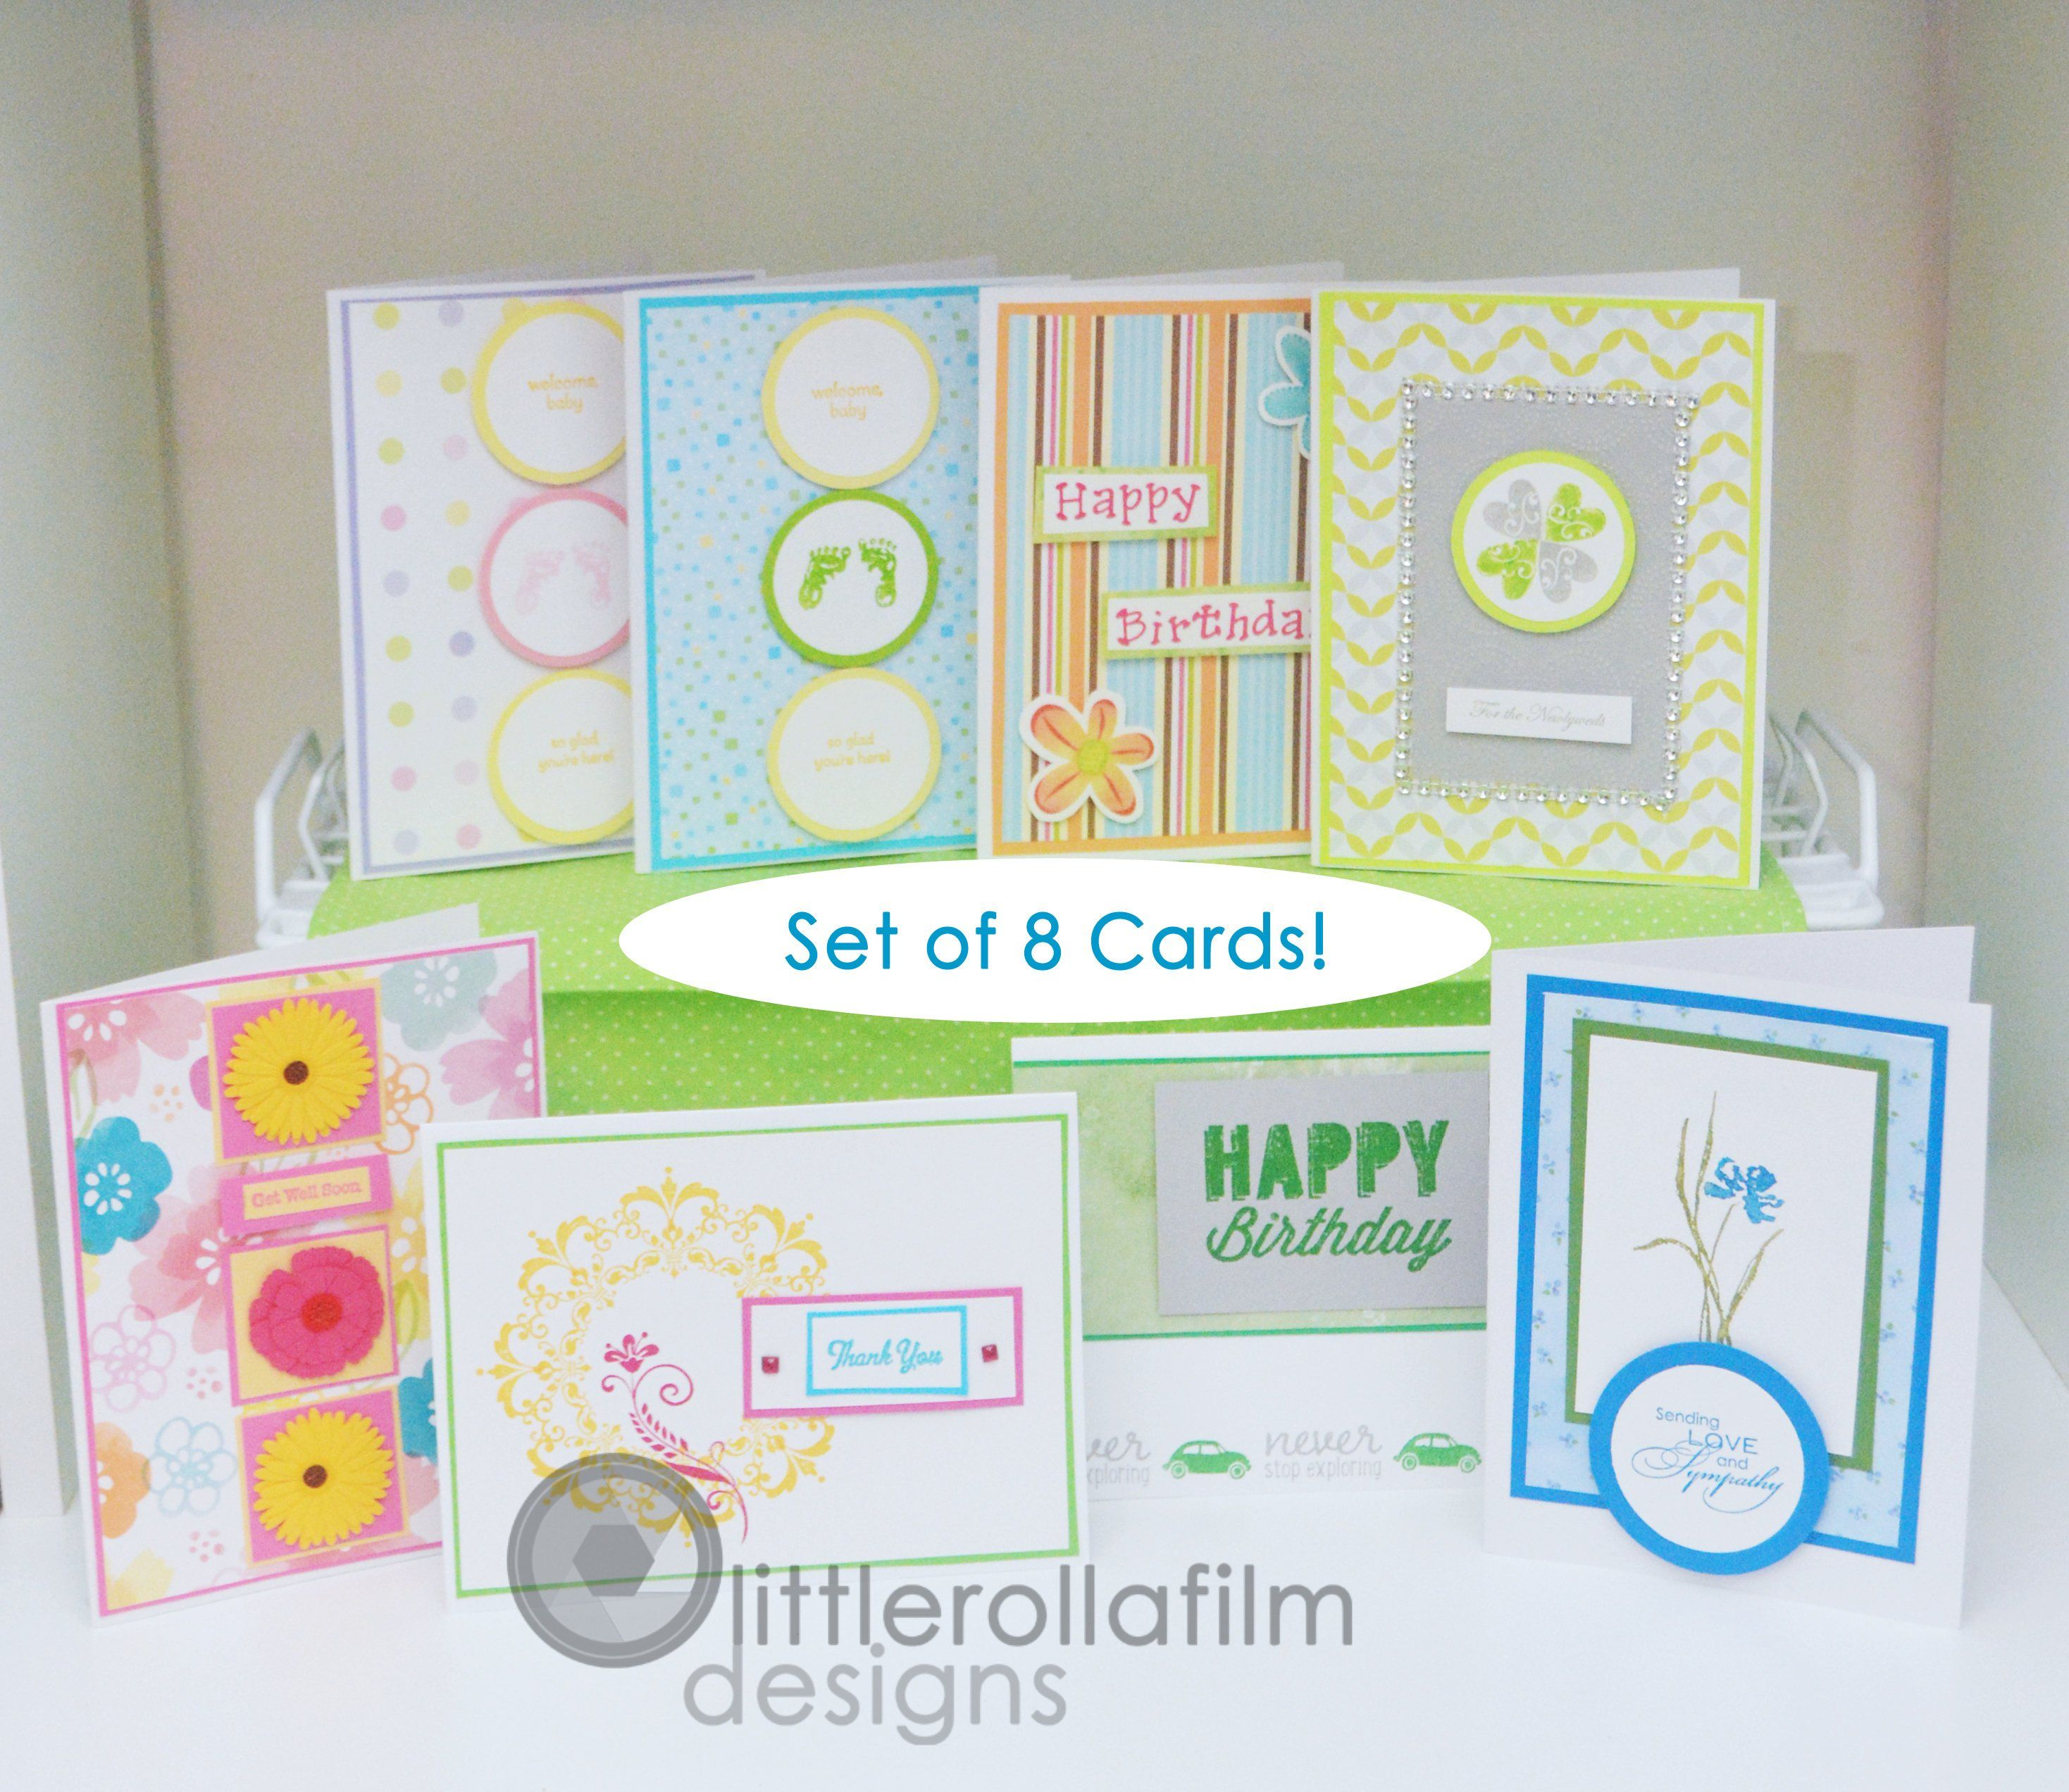 Set Of 8 Assorted Card Package 01 Wedding Birthday Baby Sympathy Thank You Cards By Littlerollafilm On Etsy